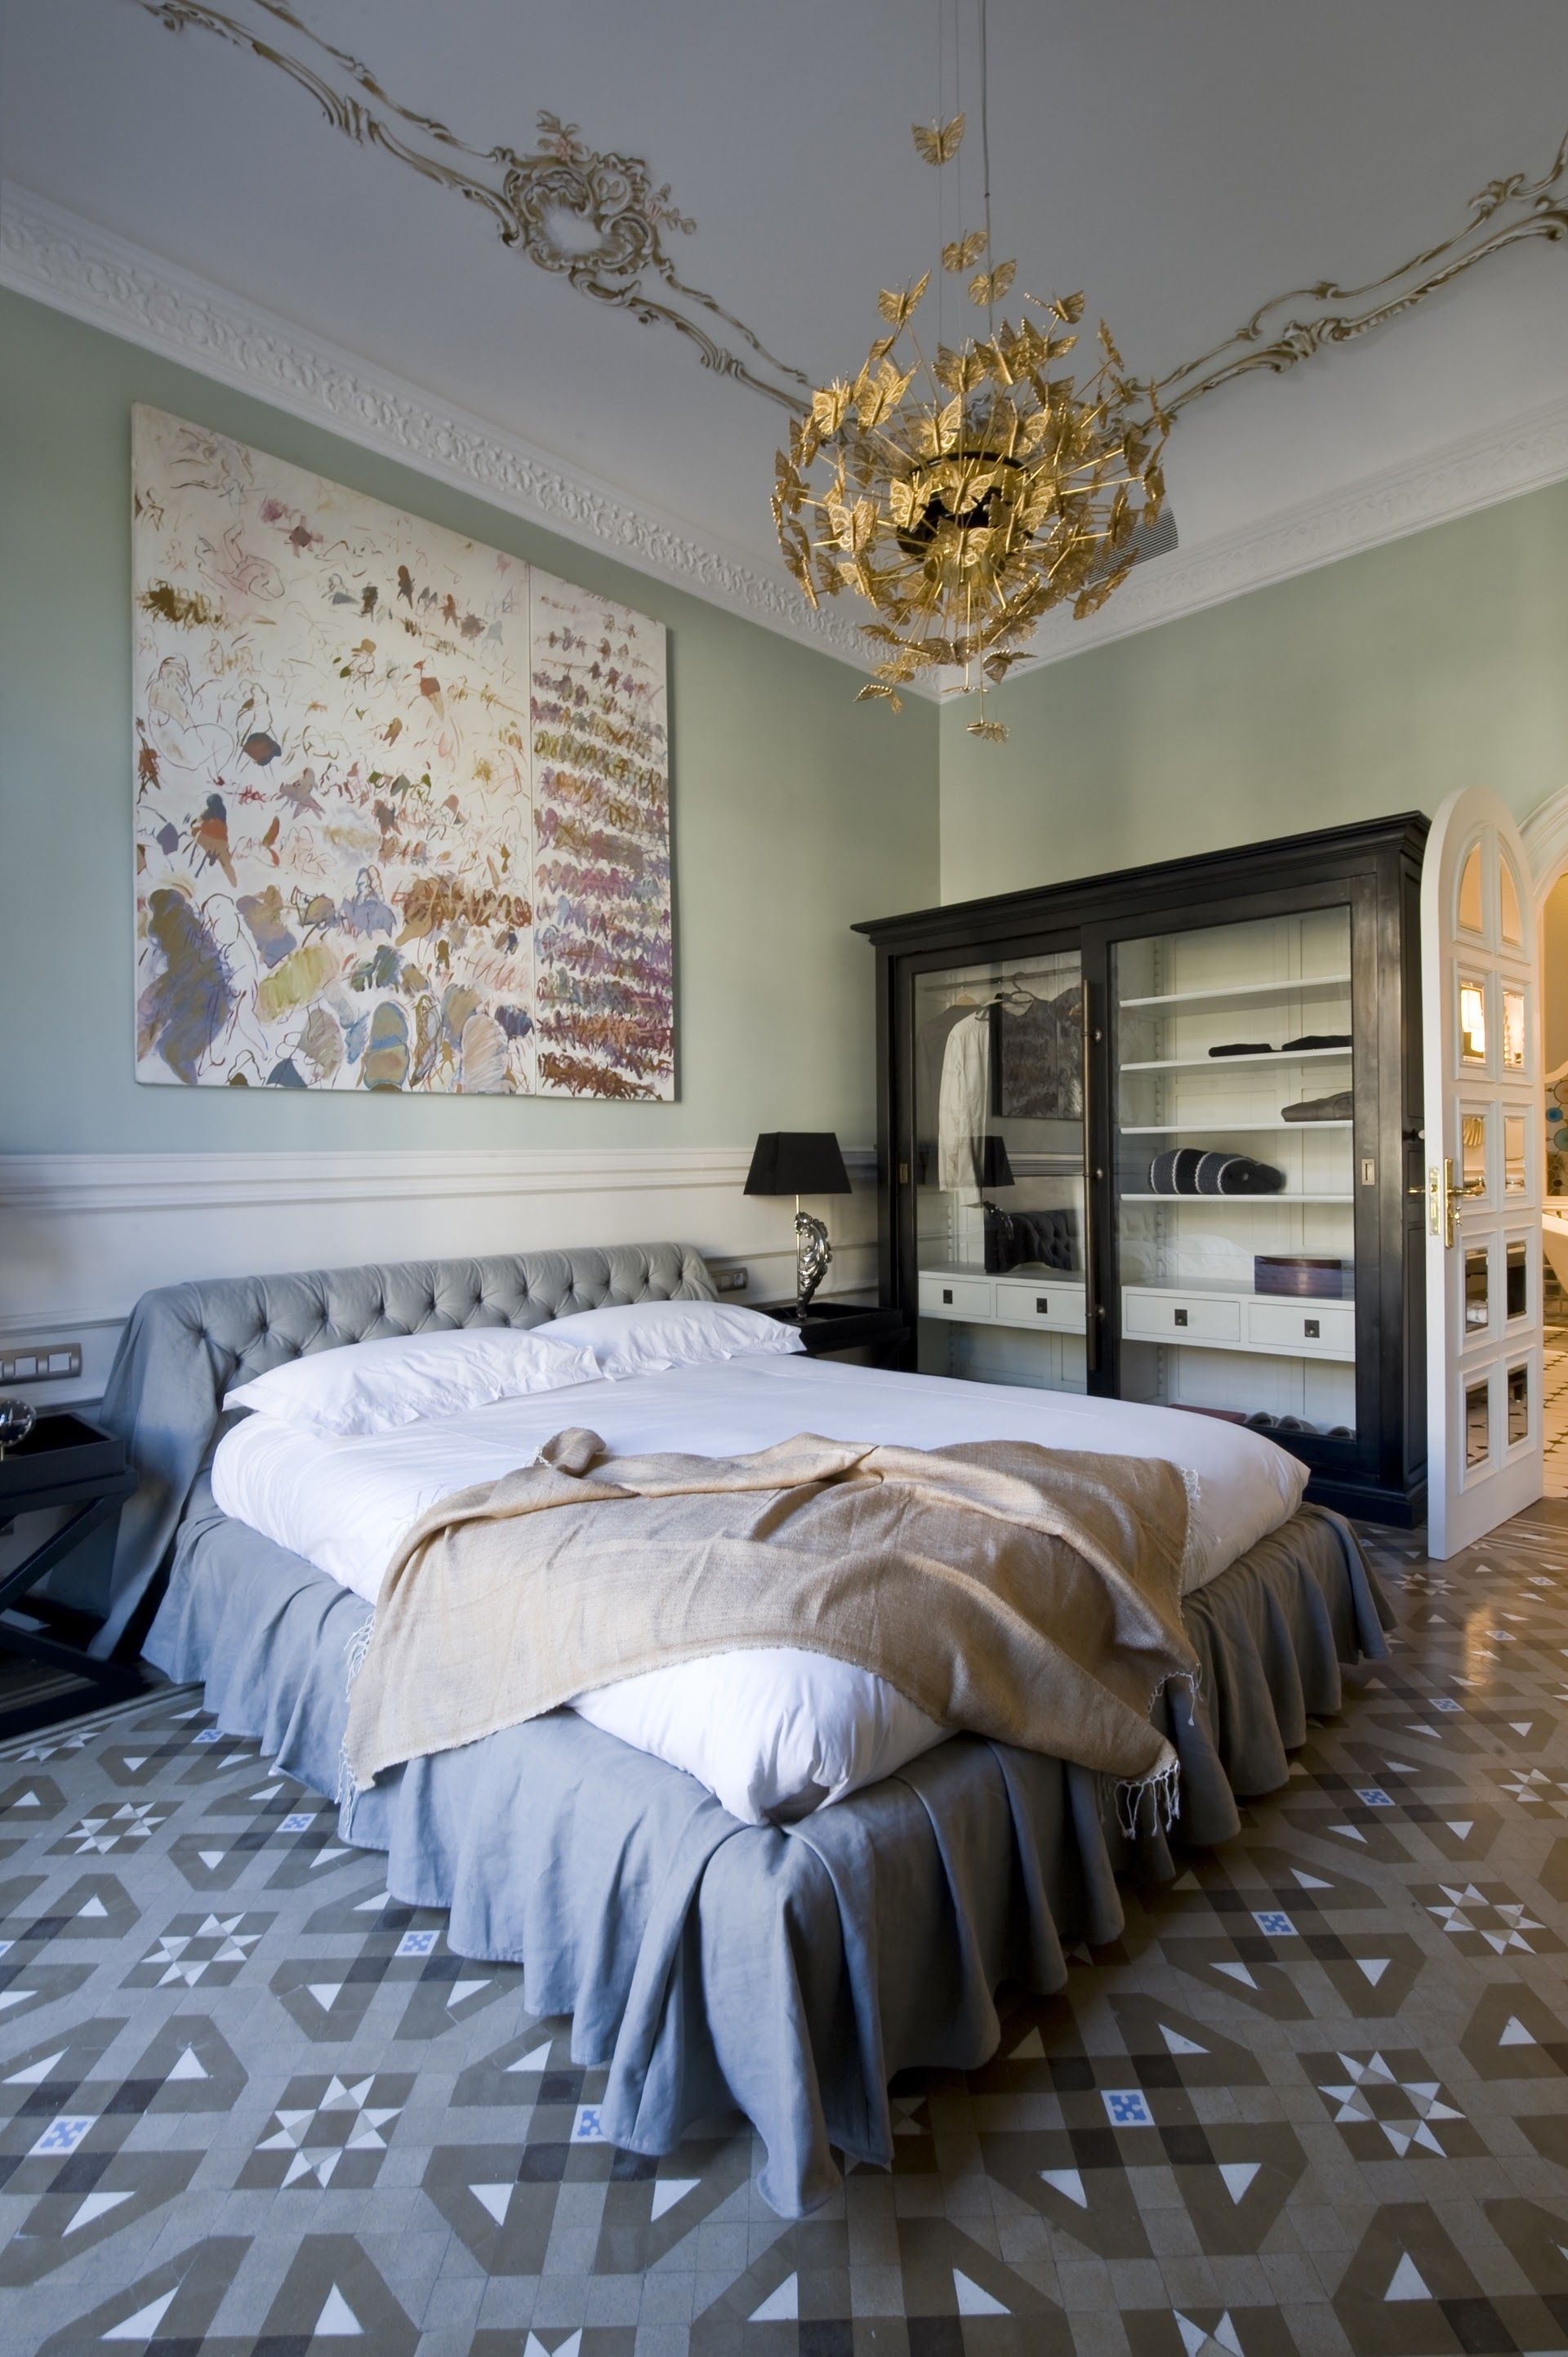 lxurious and modern bed ideas and inspiration for your home beds rh pinterest com